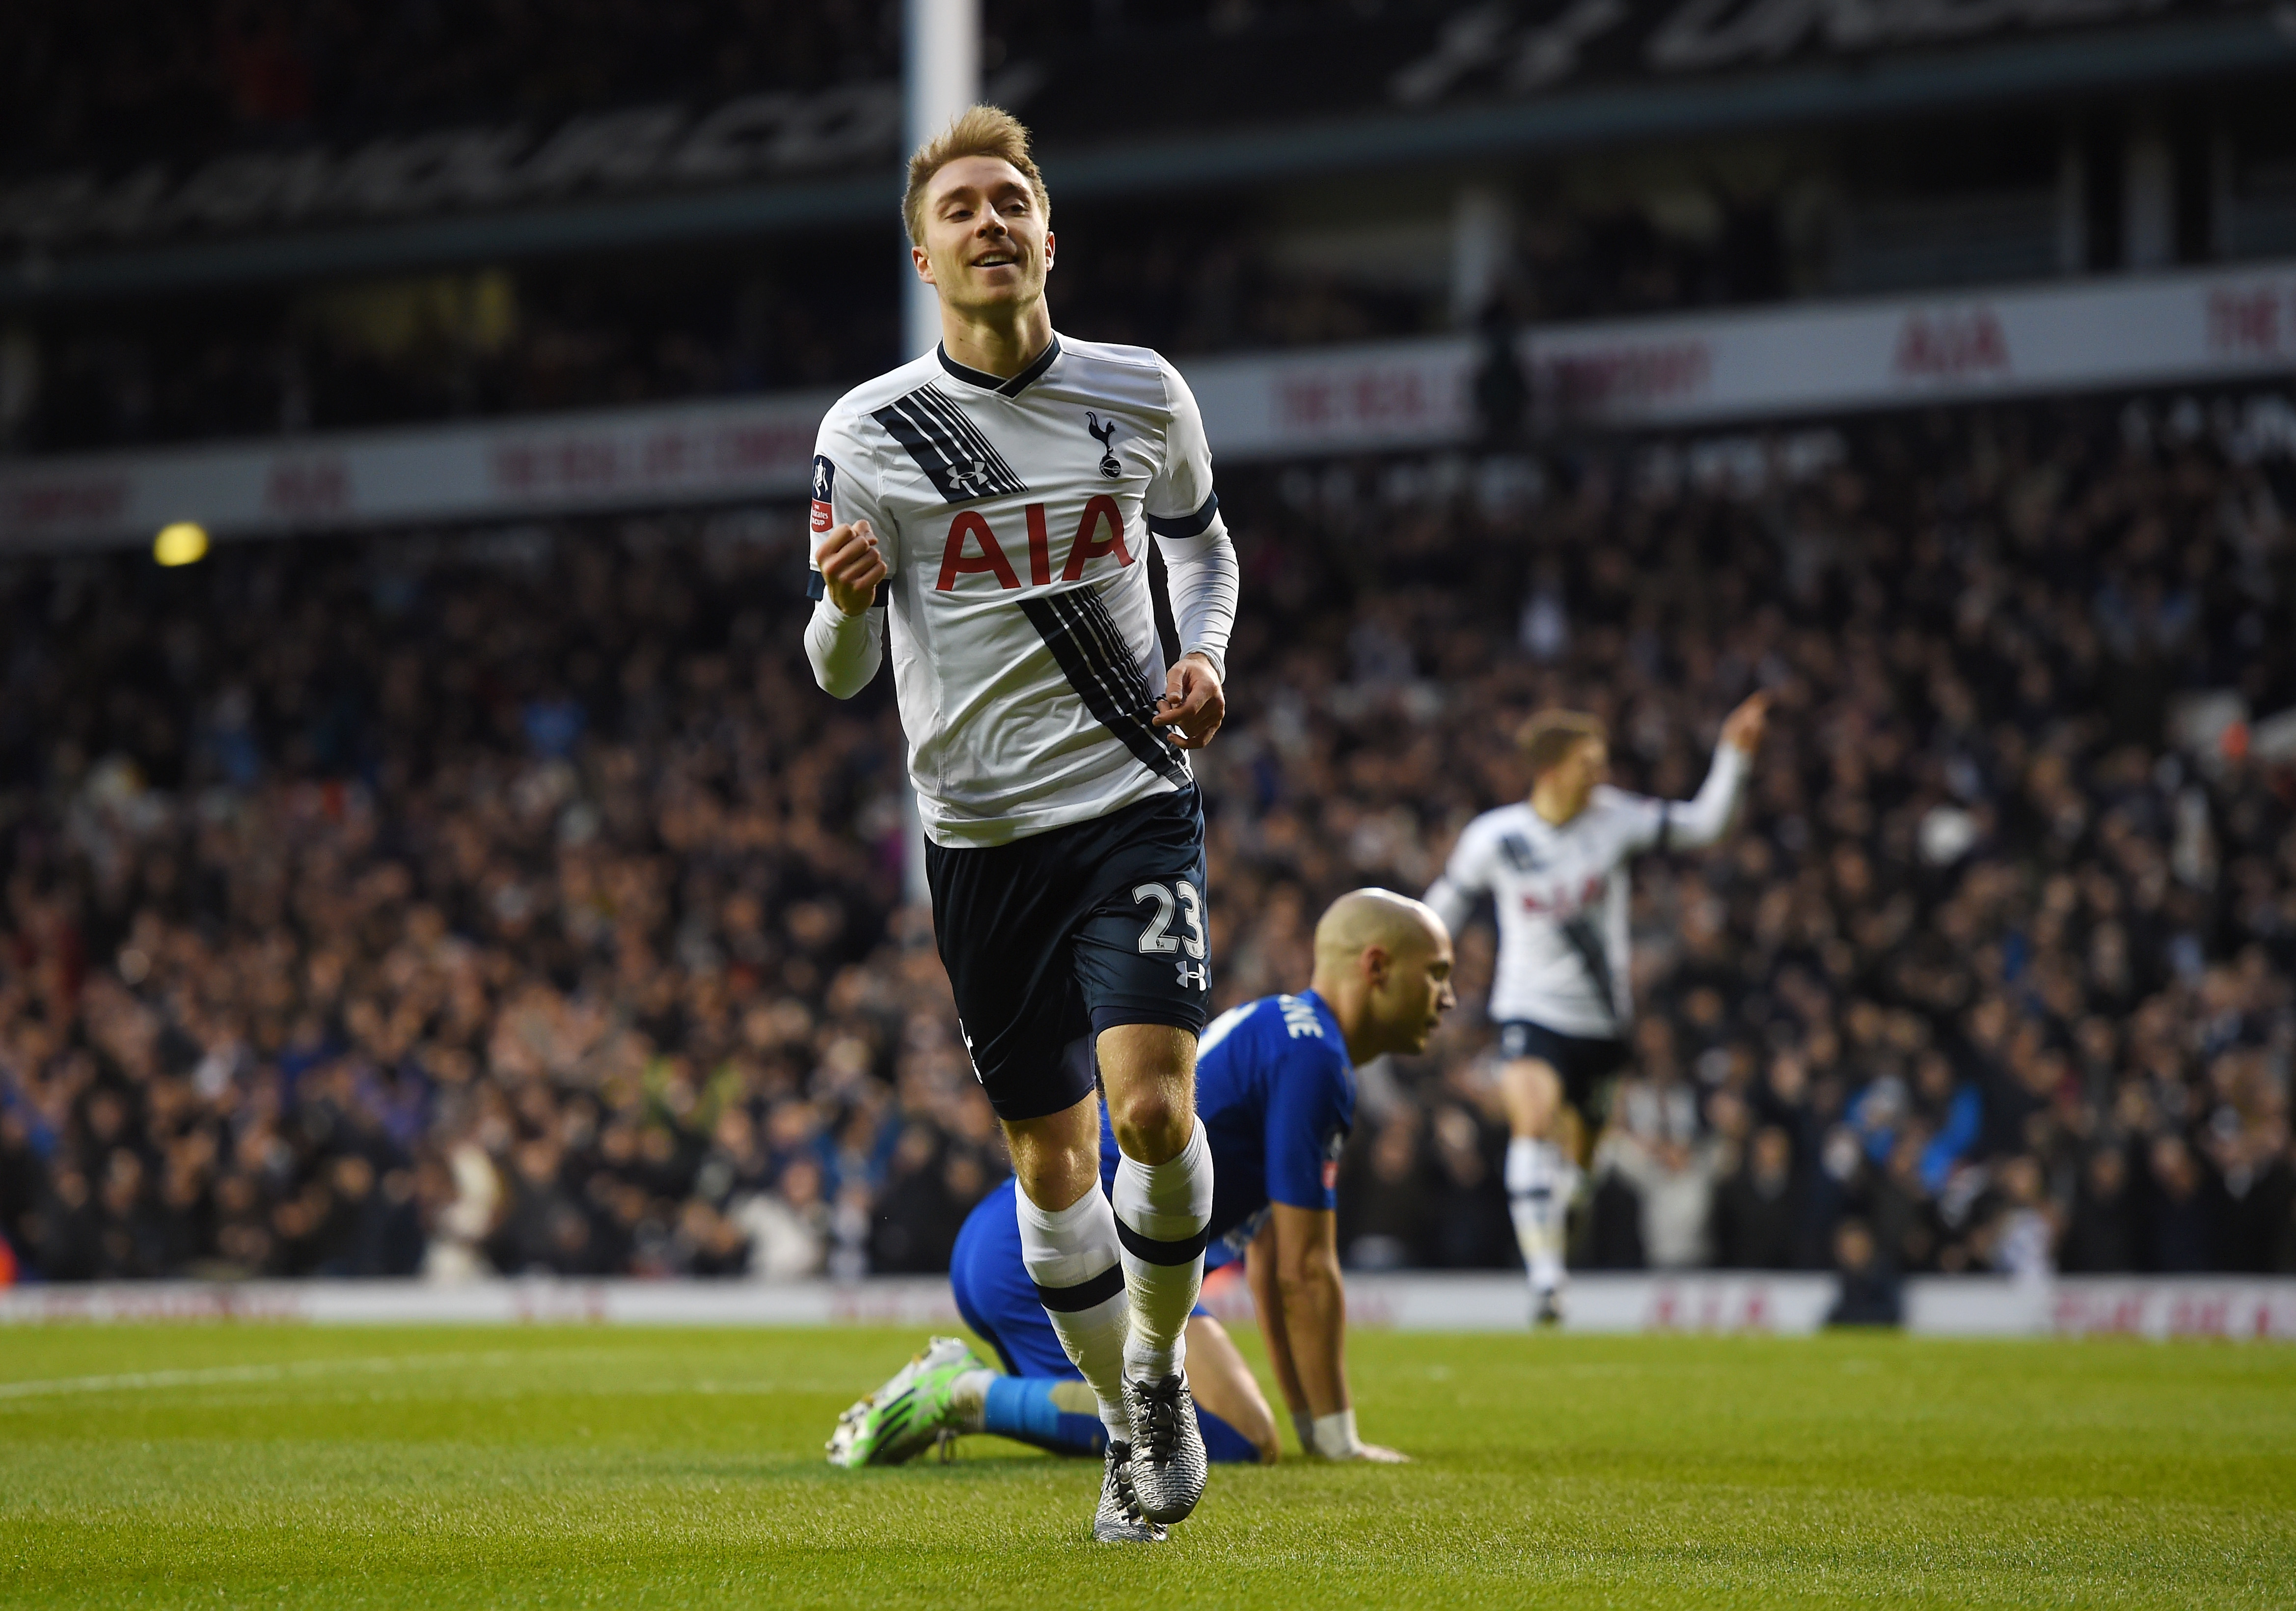 LONDON, ENGLAND - JANUARY 10: Christian Eriksen of Spurs celebrates after scoring the opening goal during The Emirates FA Cup third round match between Tottenham Hotspur and Leicester City at White Hart Lane on January 10, 2016 in London, England. (Photo by Michael Regan/Getty Images)